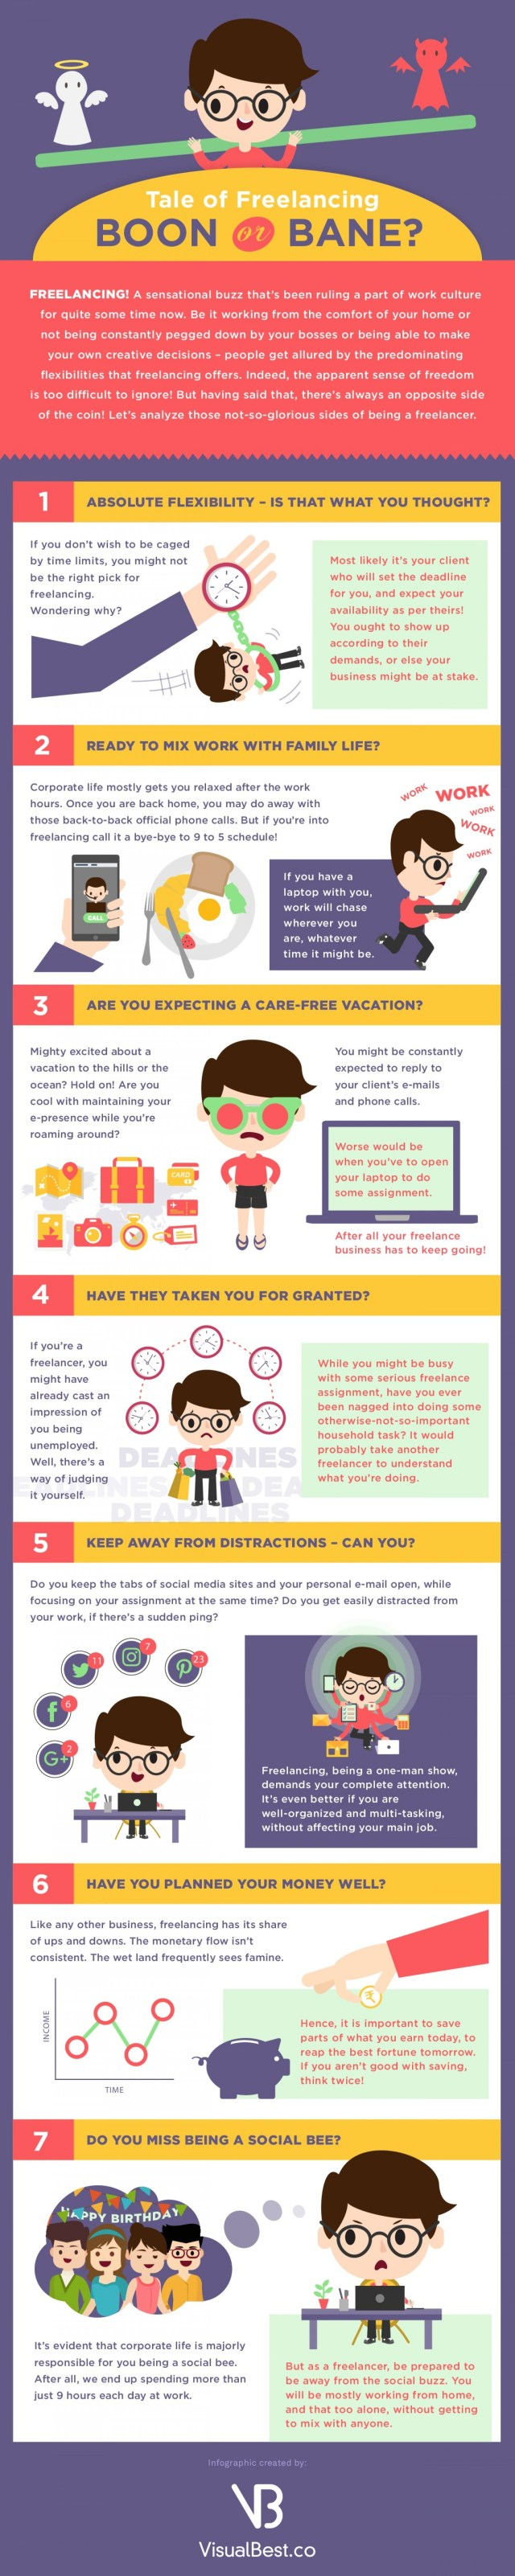 tale-of-freelancing-boon-or-bane-infographic_58cd28408ac2e_w1500